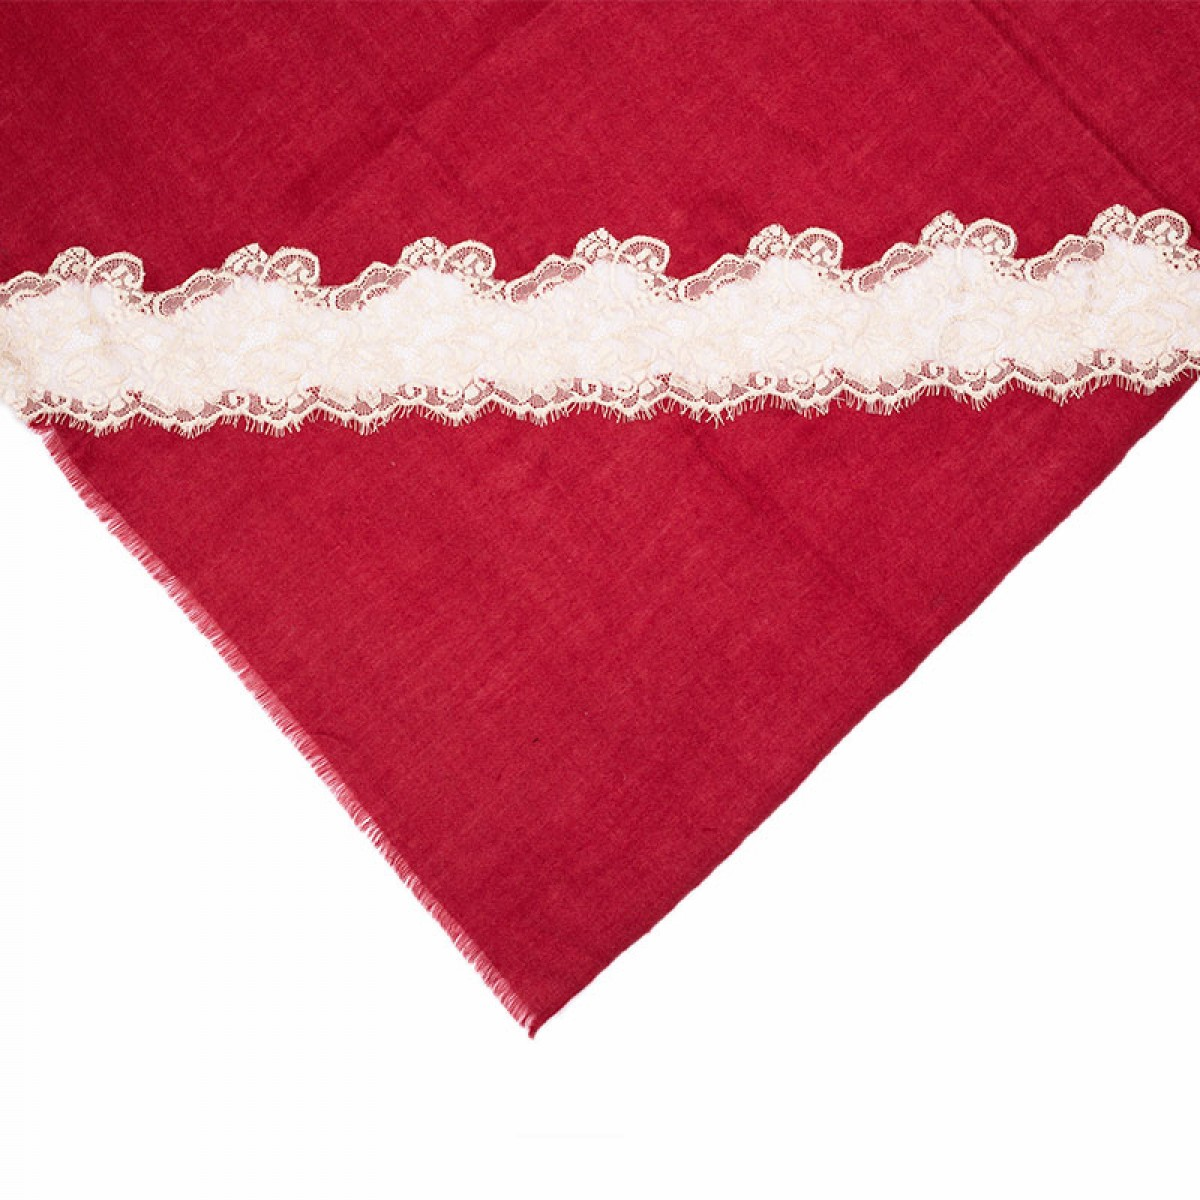 Lace Twill Pashmina Scarf Stripes Across - Crimson Red